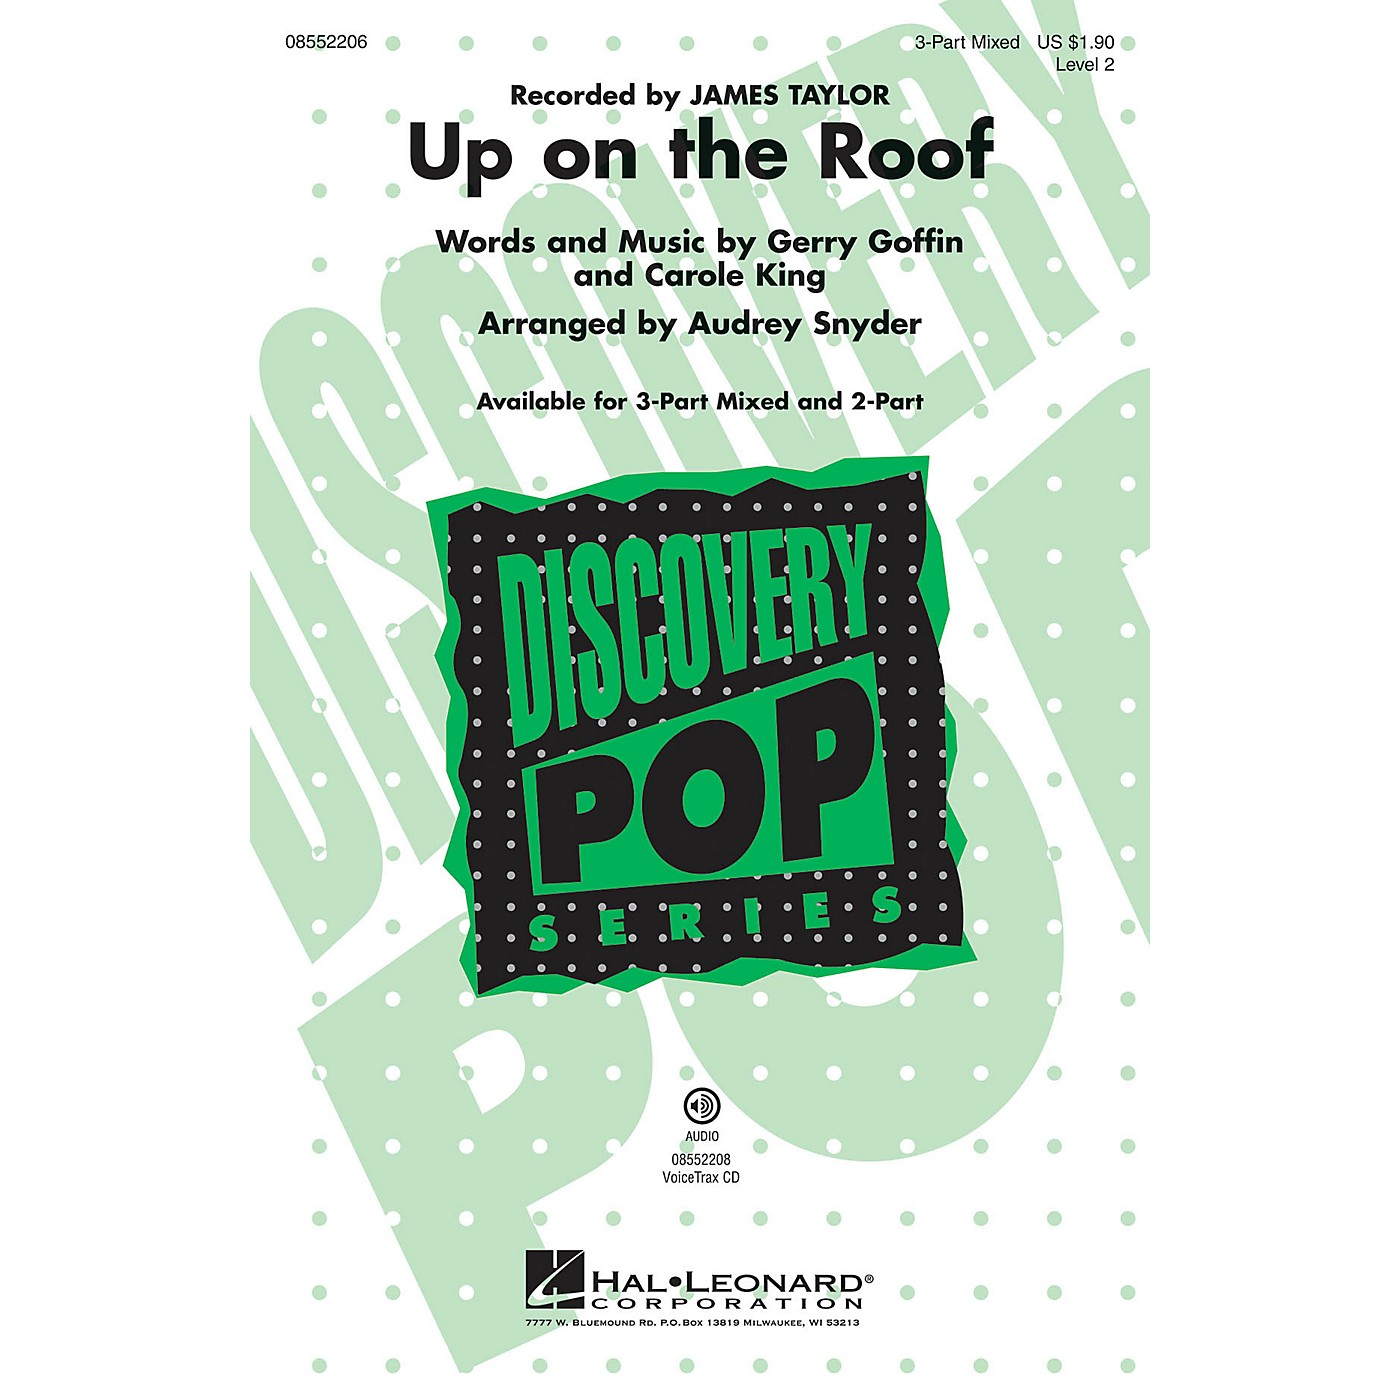 Hal Leonard Up on the Roof (Discovery Level 2) 3-Part Mixed by James Taylor arranged by Audrey Snyder thumbnail